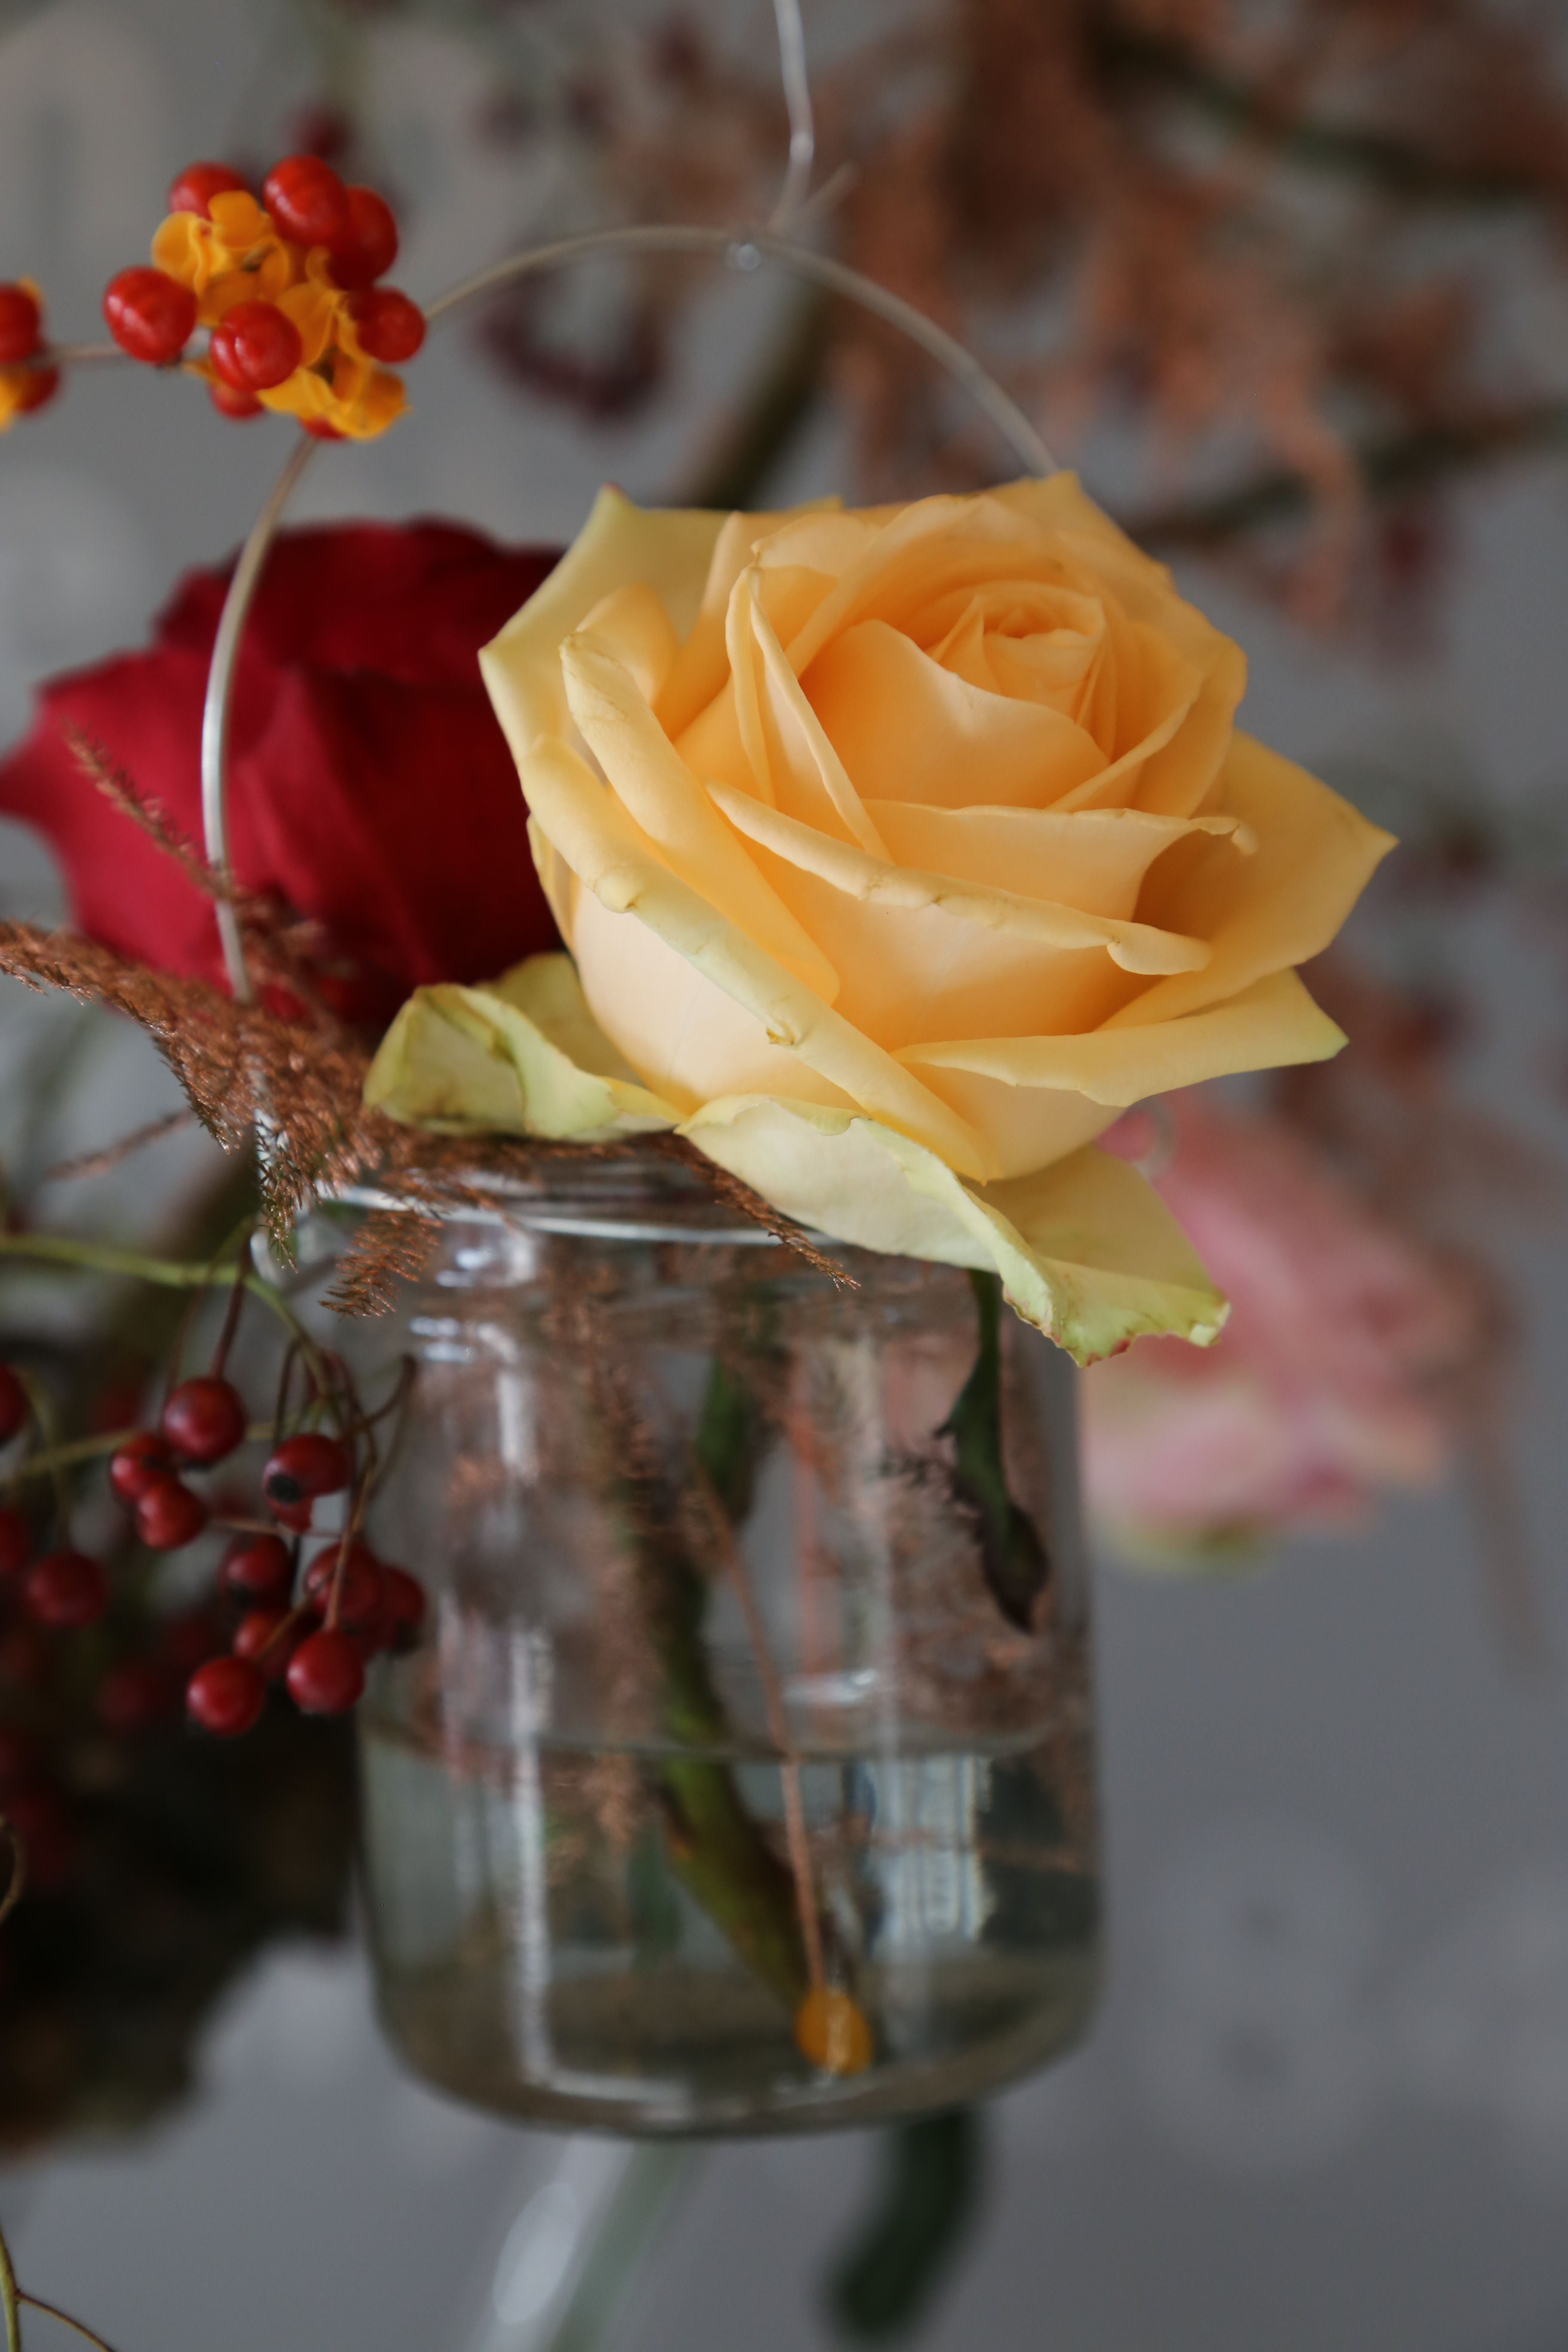 Meet Peach Avalanche+®, just hanging around with a red colleague rose, also by hybridizer Dümmen Orange. We adore this jam jar trend, it's a casual and simply stunning way to create seasonal home décor with hardly any fuss. Show us yours, we'd love to share!   www.avalancheroses.com